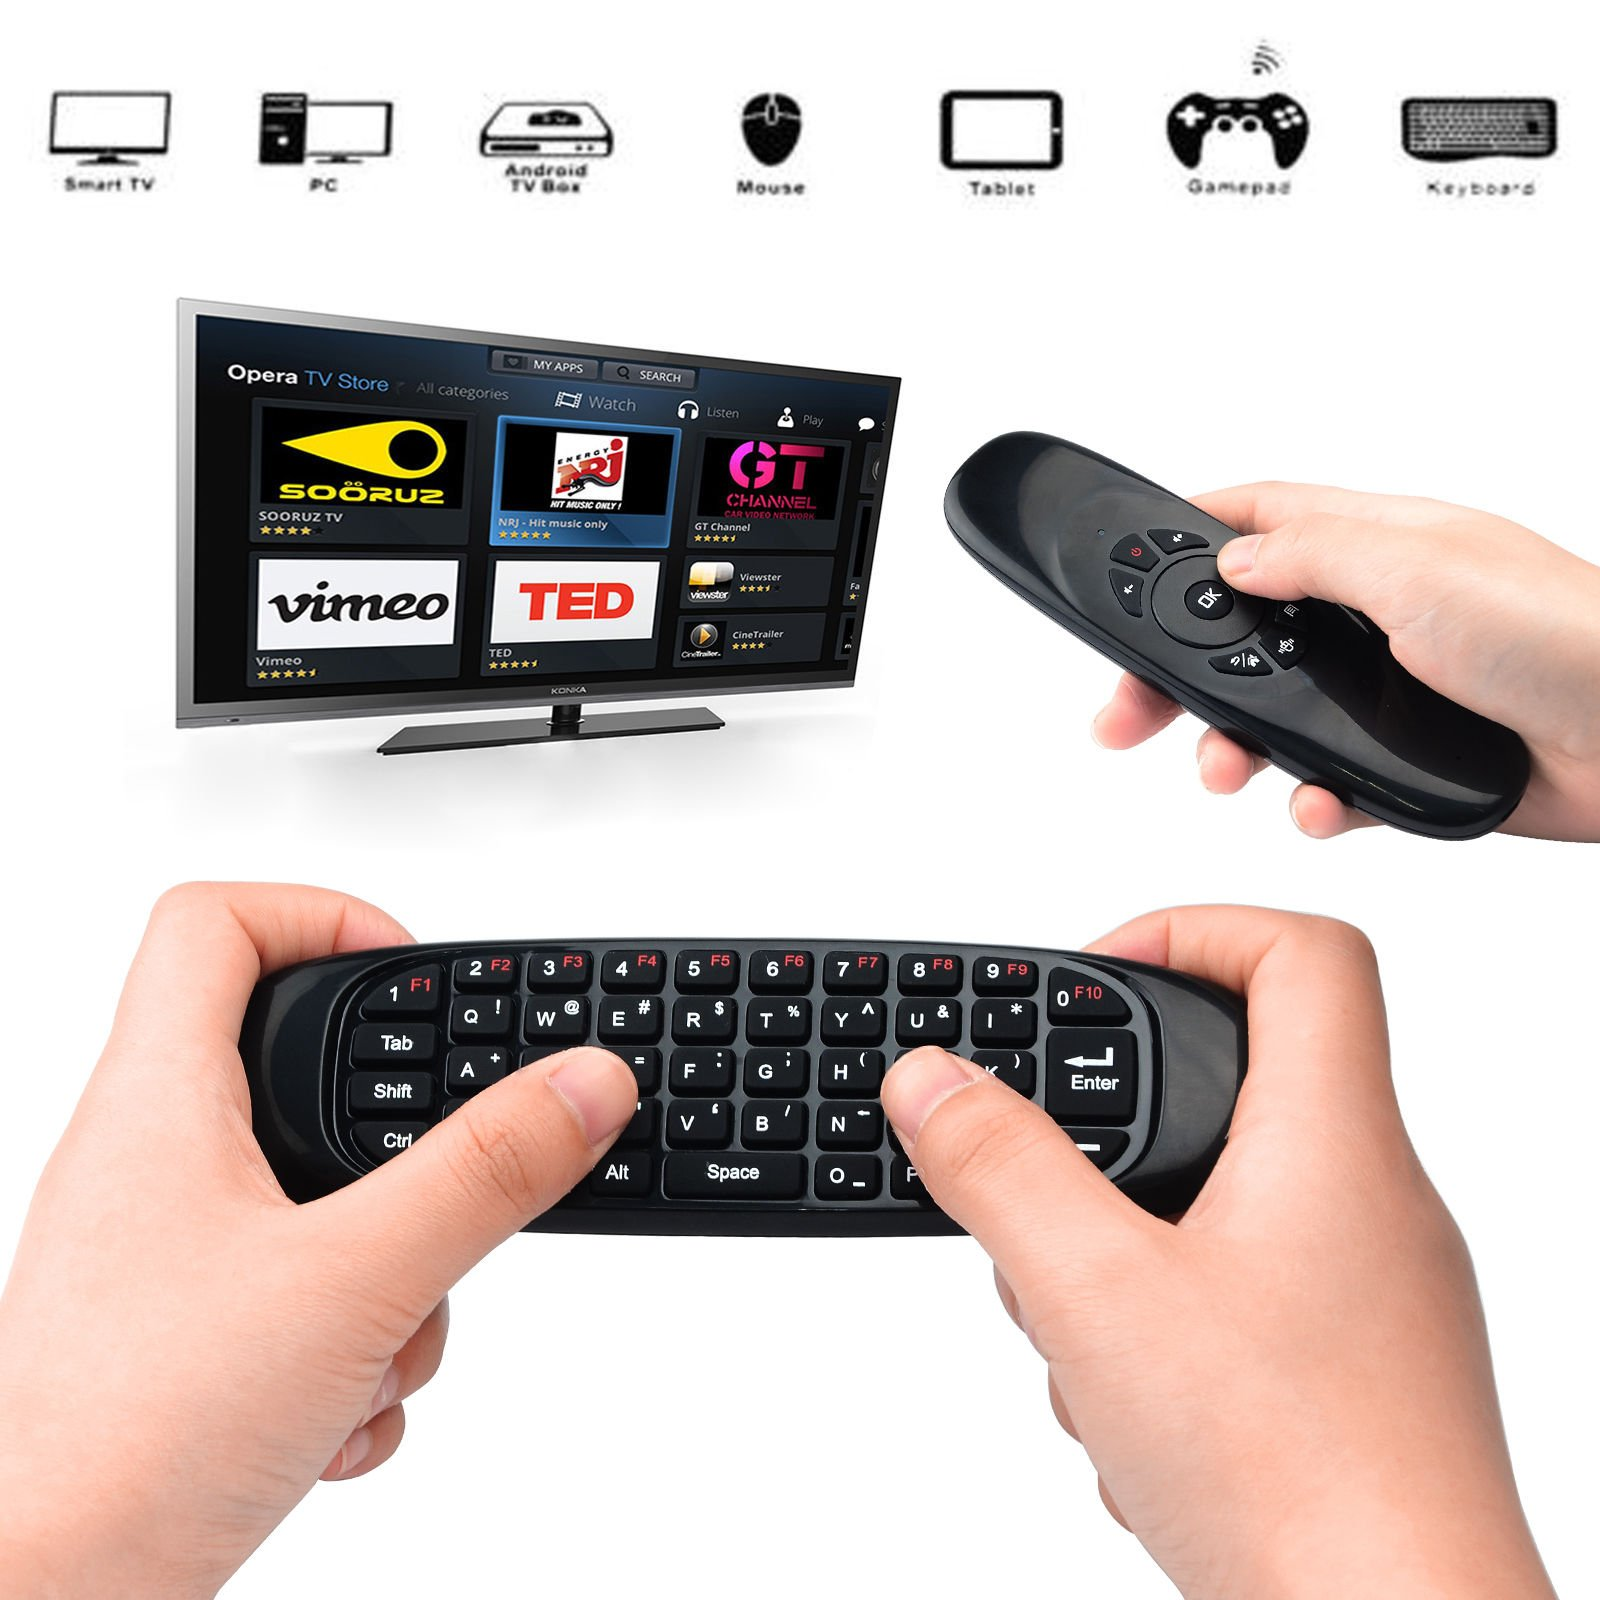 Yesea Air Mouse USB Universal Remote Control 2.4Ghz Wireless Mini Keyboard 3-Axis Gyroscope USB Remote Control for PC HTPC IPTV Android Tv Box Media Player